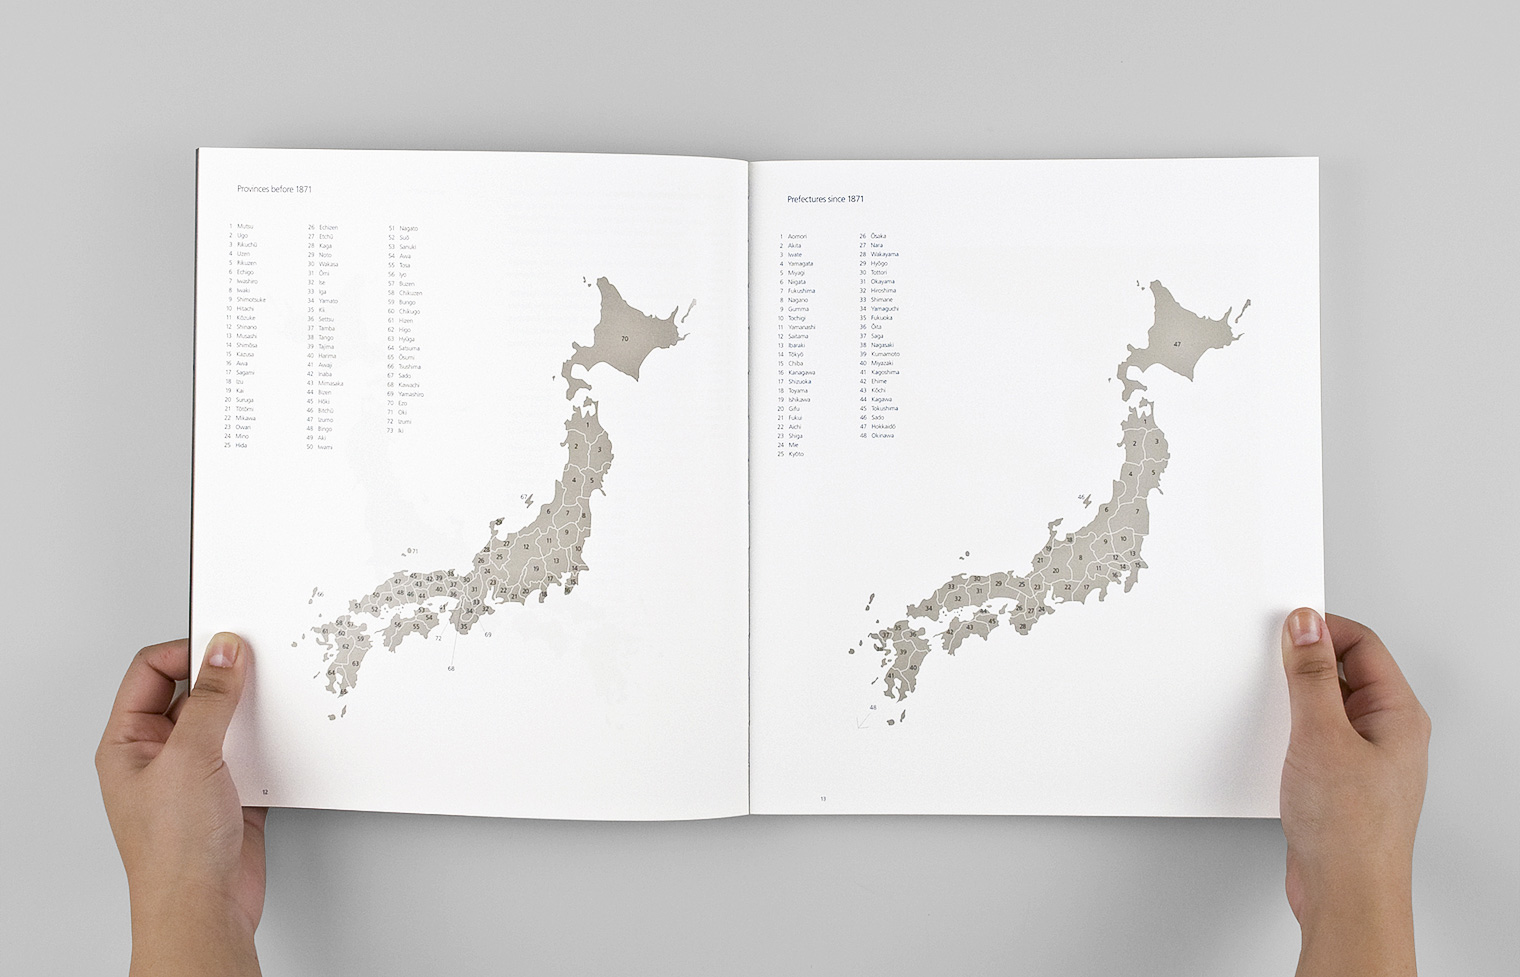 The front of the catalogue includes special maps drawn by Studio A indicating prefecture boundaries.